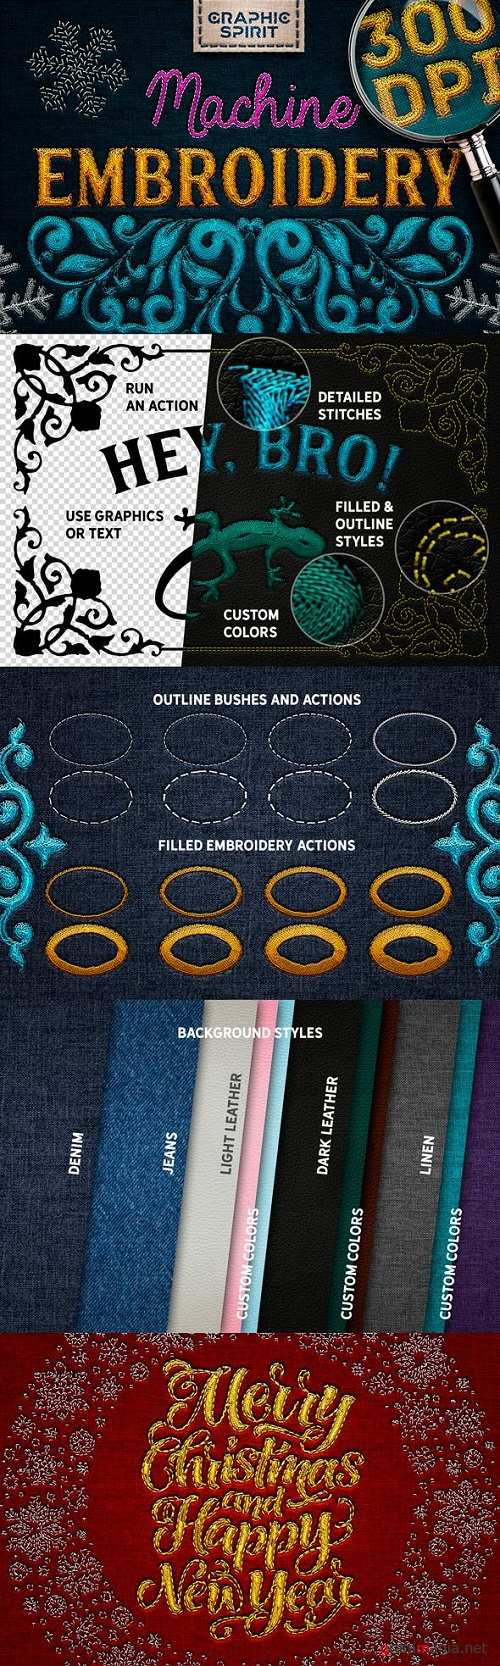 Machine Embroidery Actions For Adobe Photoshop - 23583687